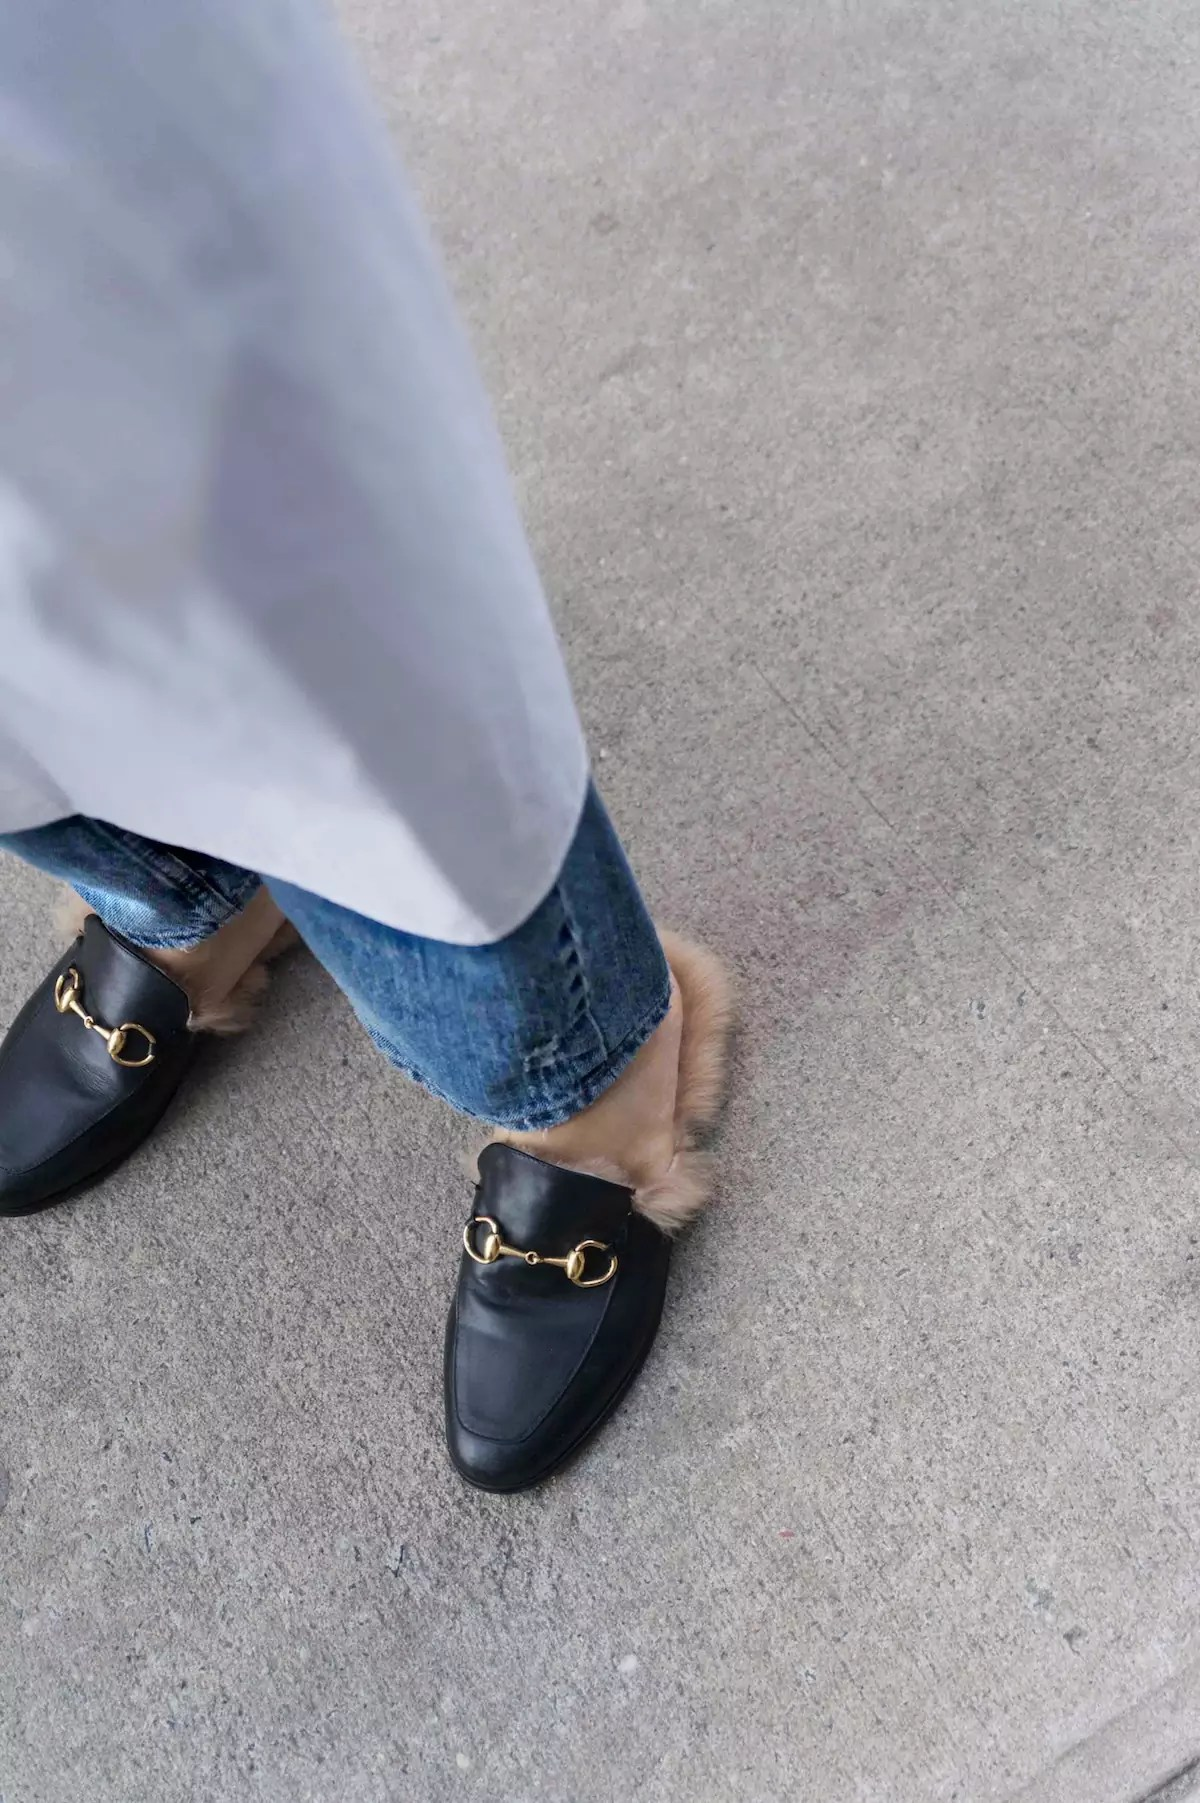 89f6d9c44ad dress-over-jeans-gucci-loafers-alley-girl ~ alley girl